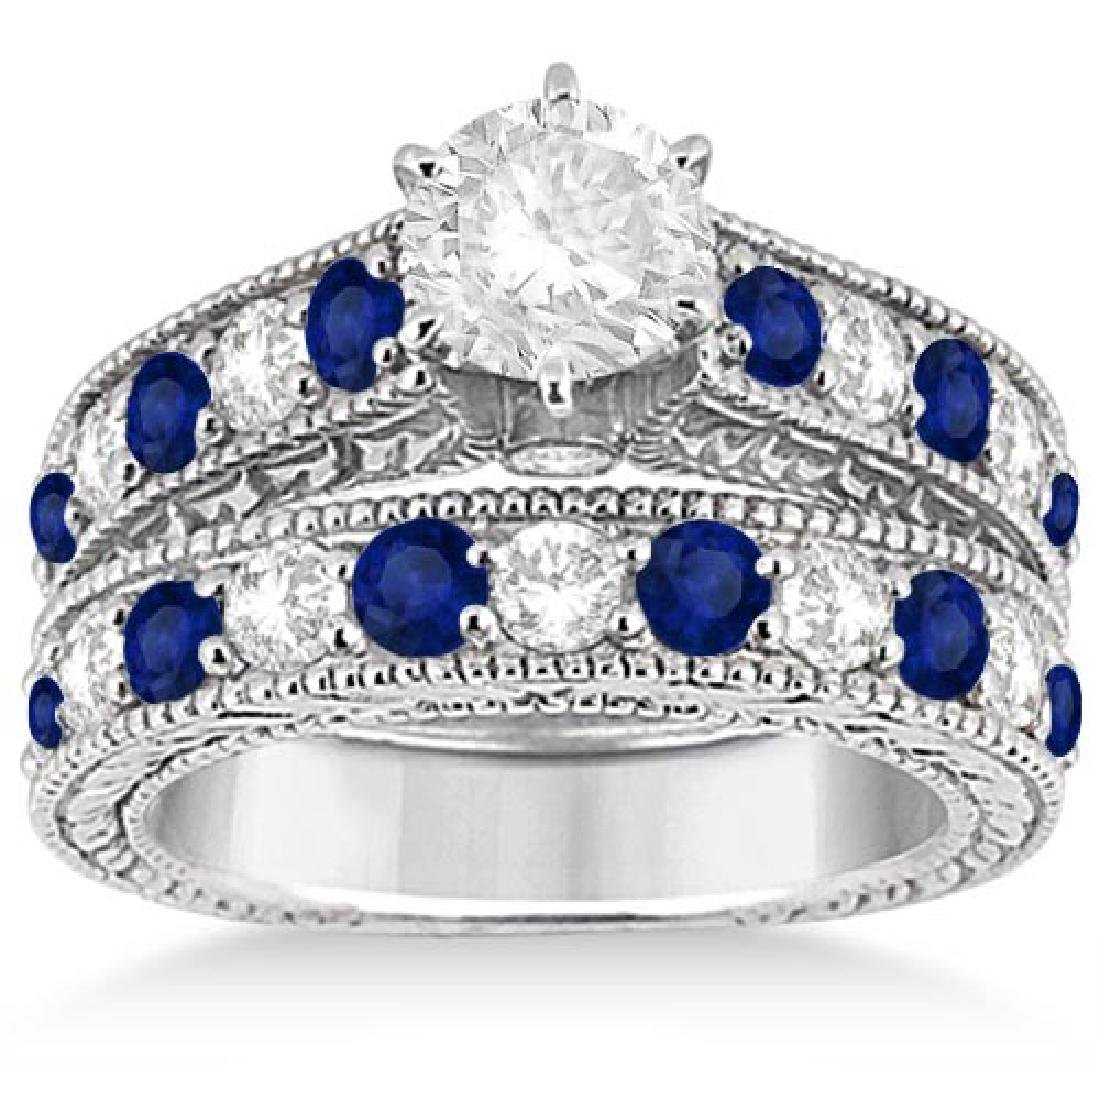 Antique Diamond and Sapphire Bridal Ring Set in Platinu